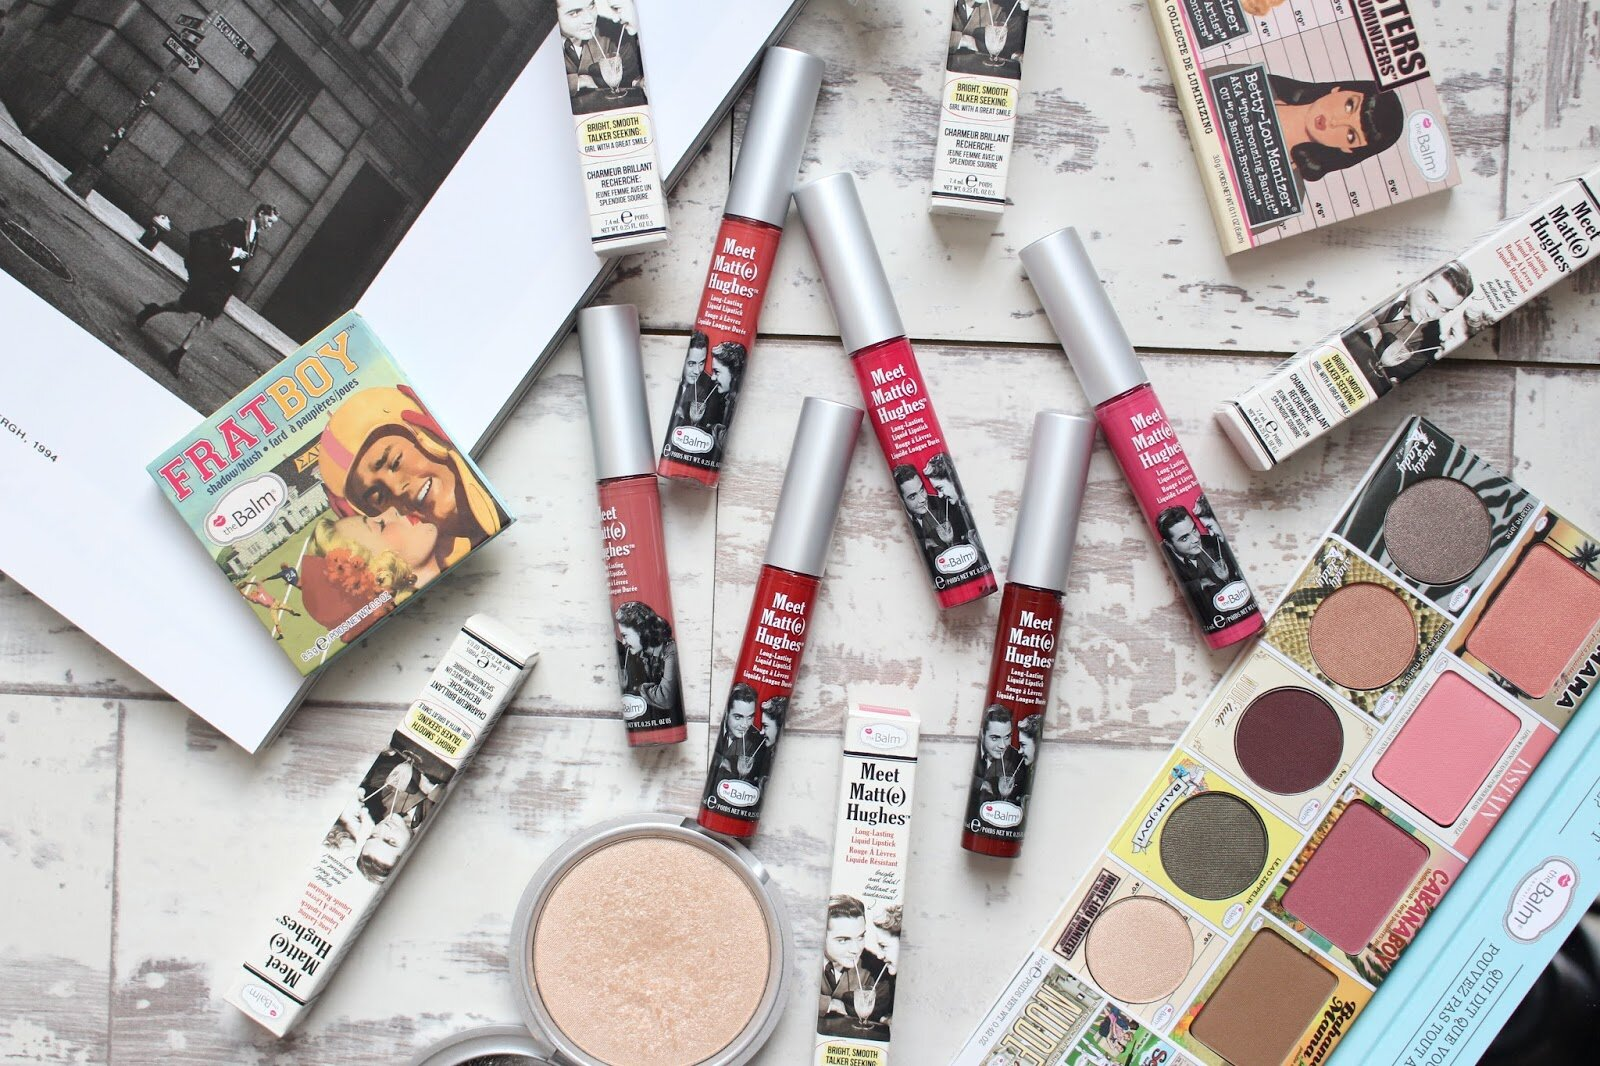 Review son kem lì The Balm Meet Matte Hughes Lip Color